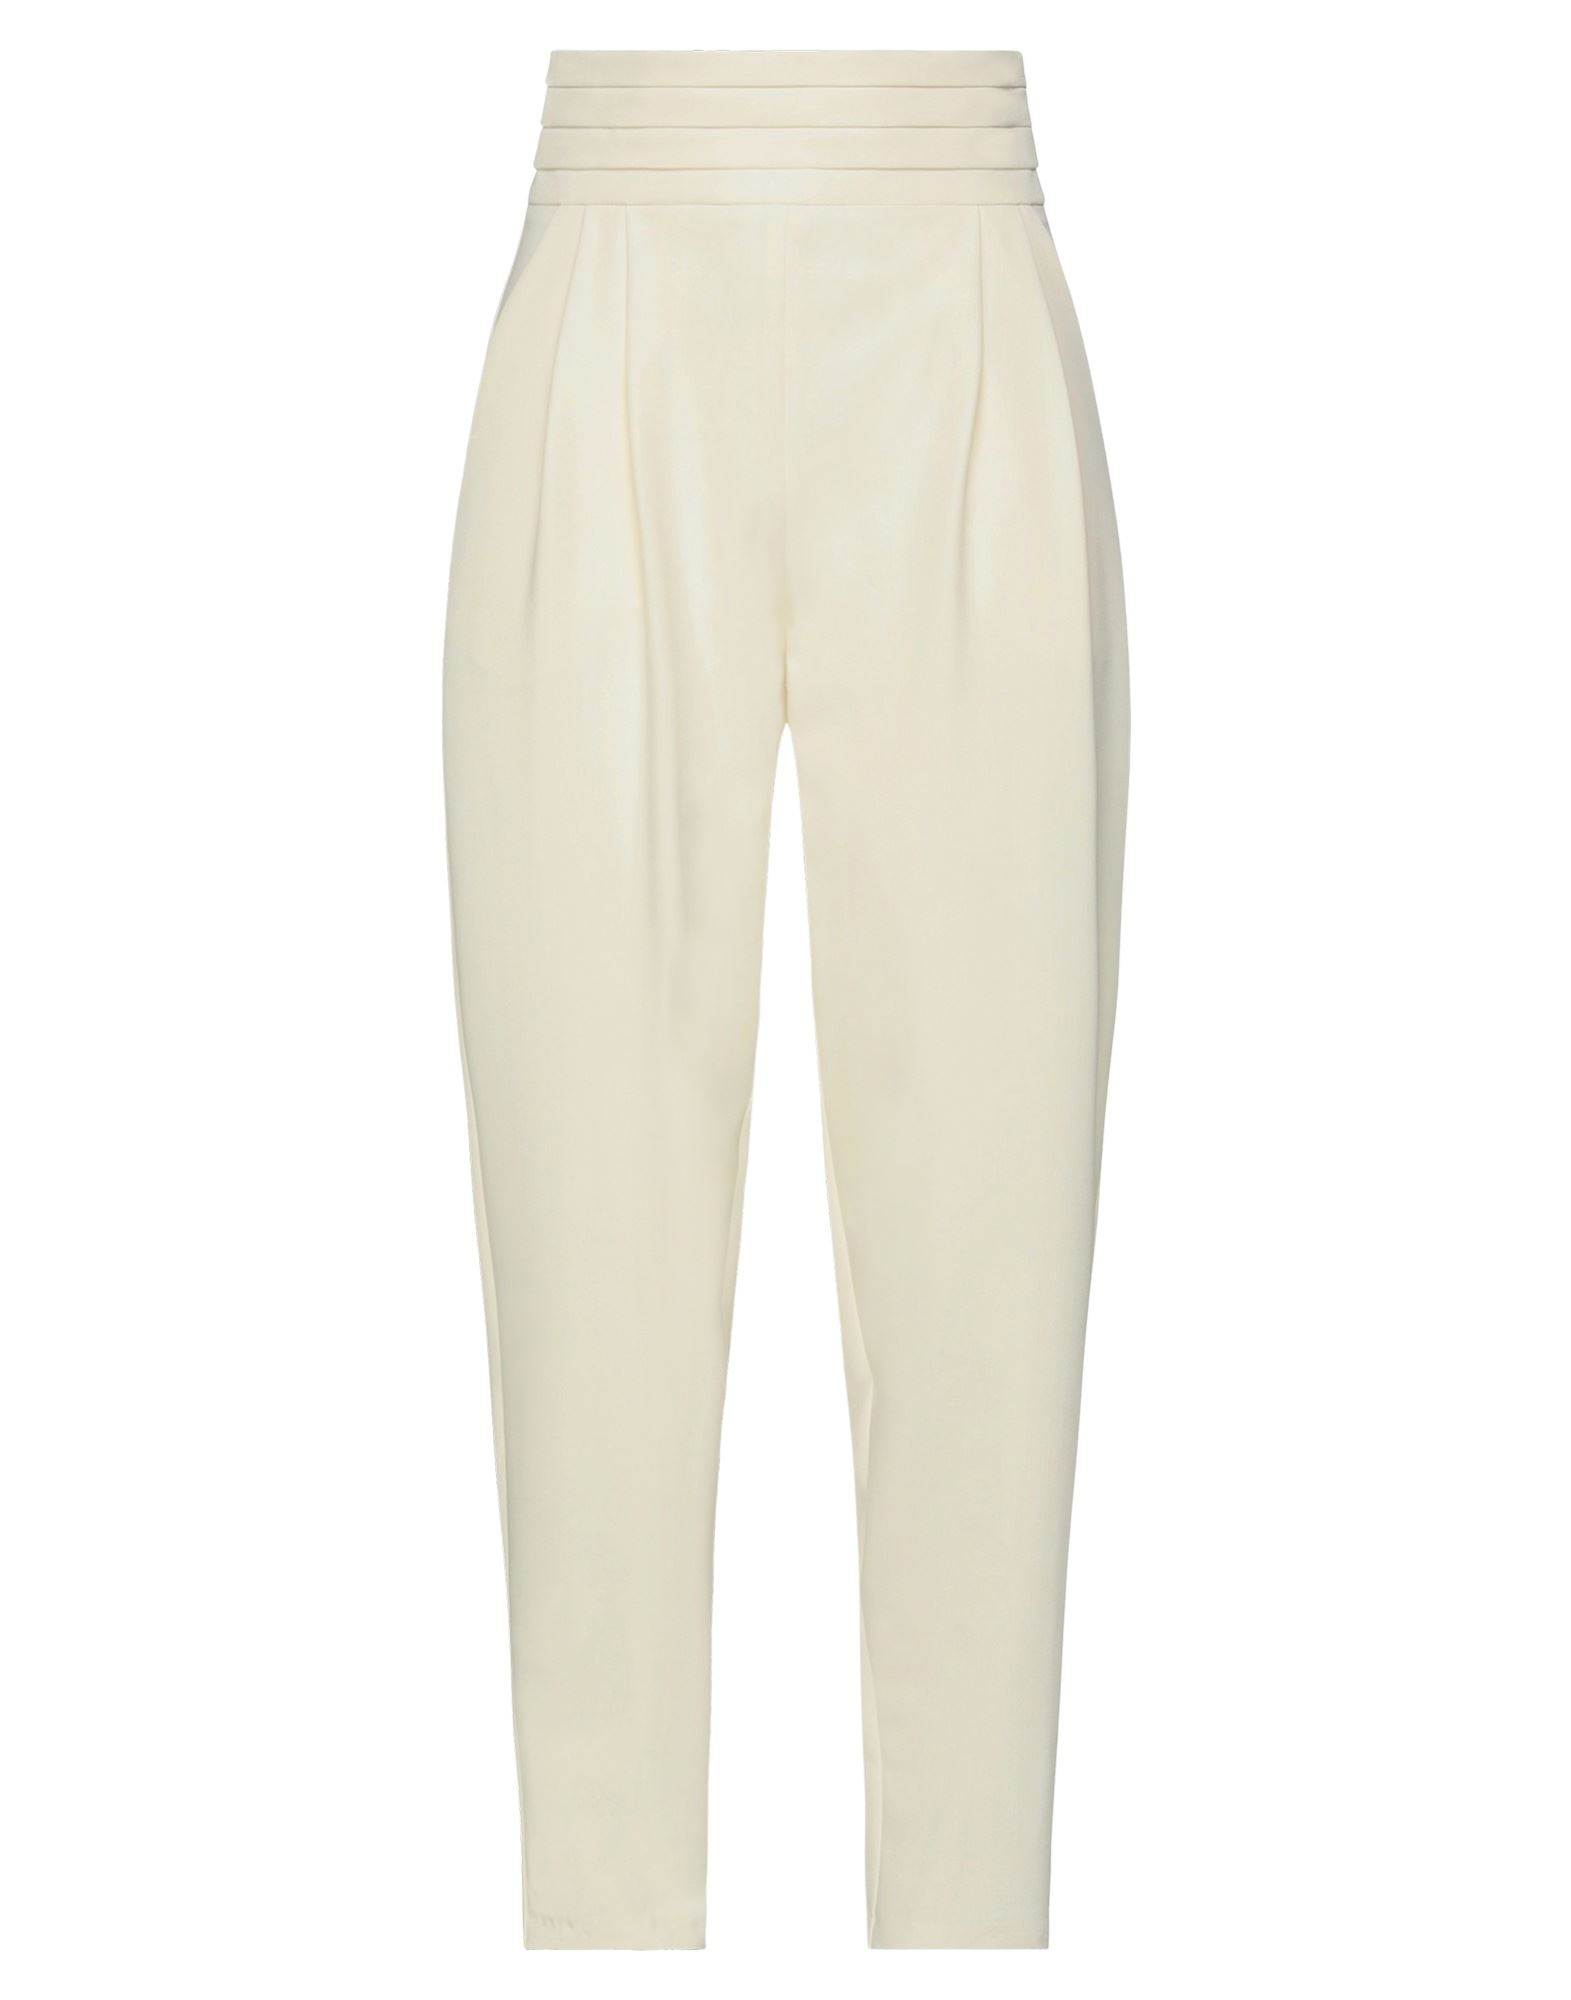 Actualee Casual Pants In White